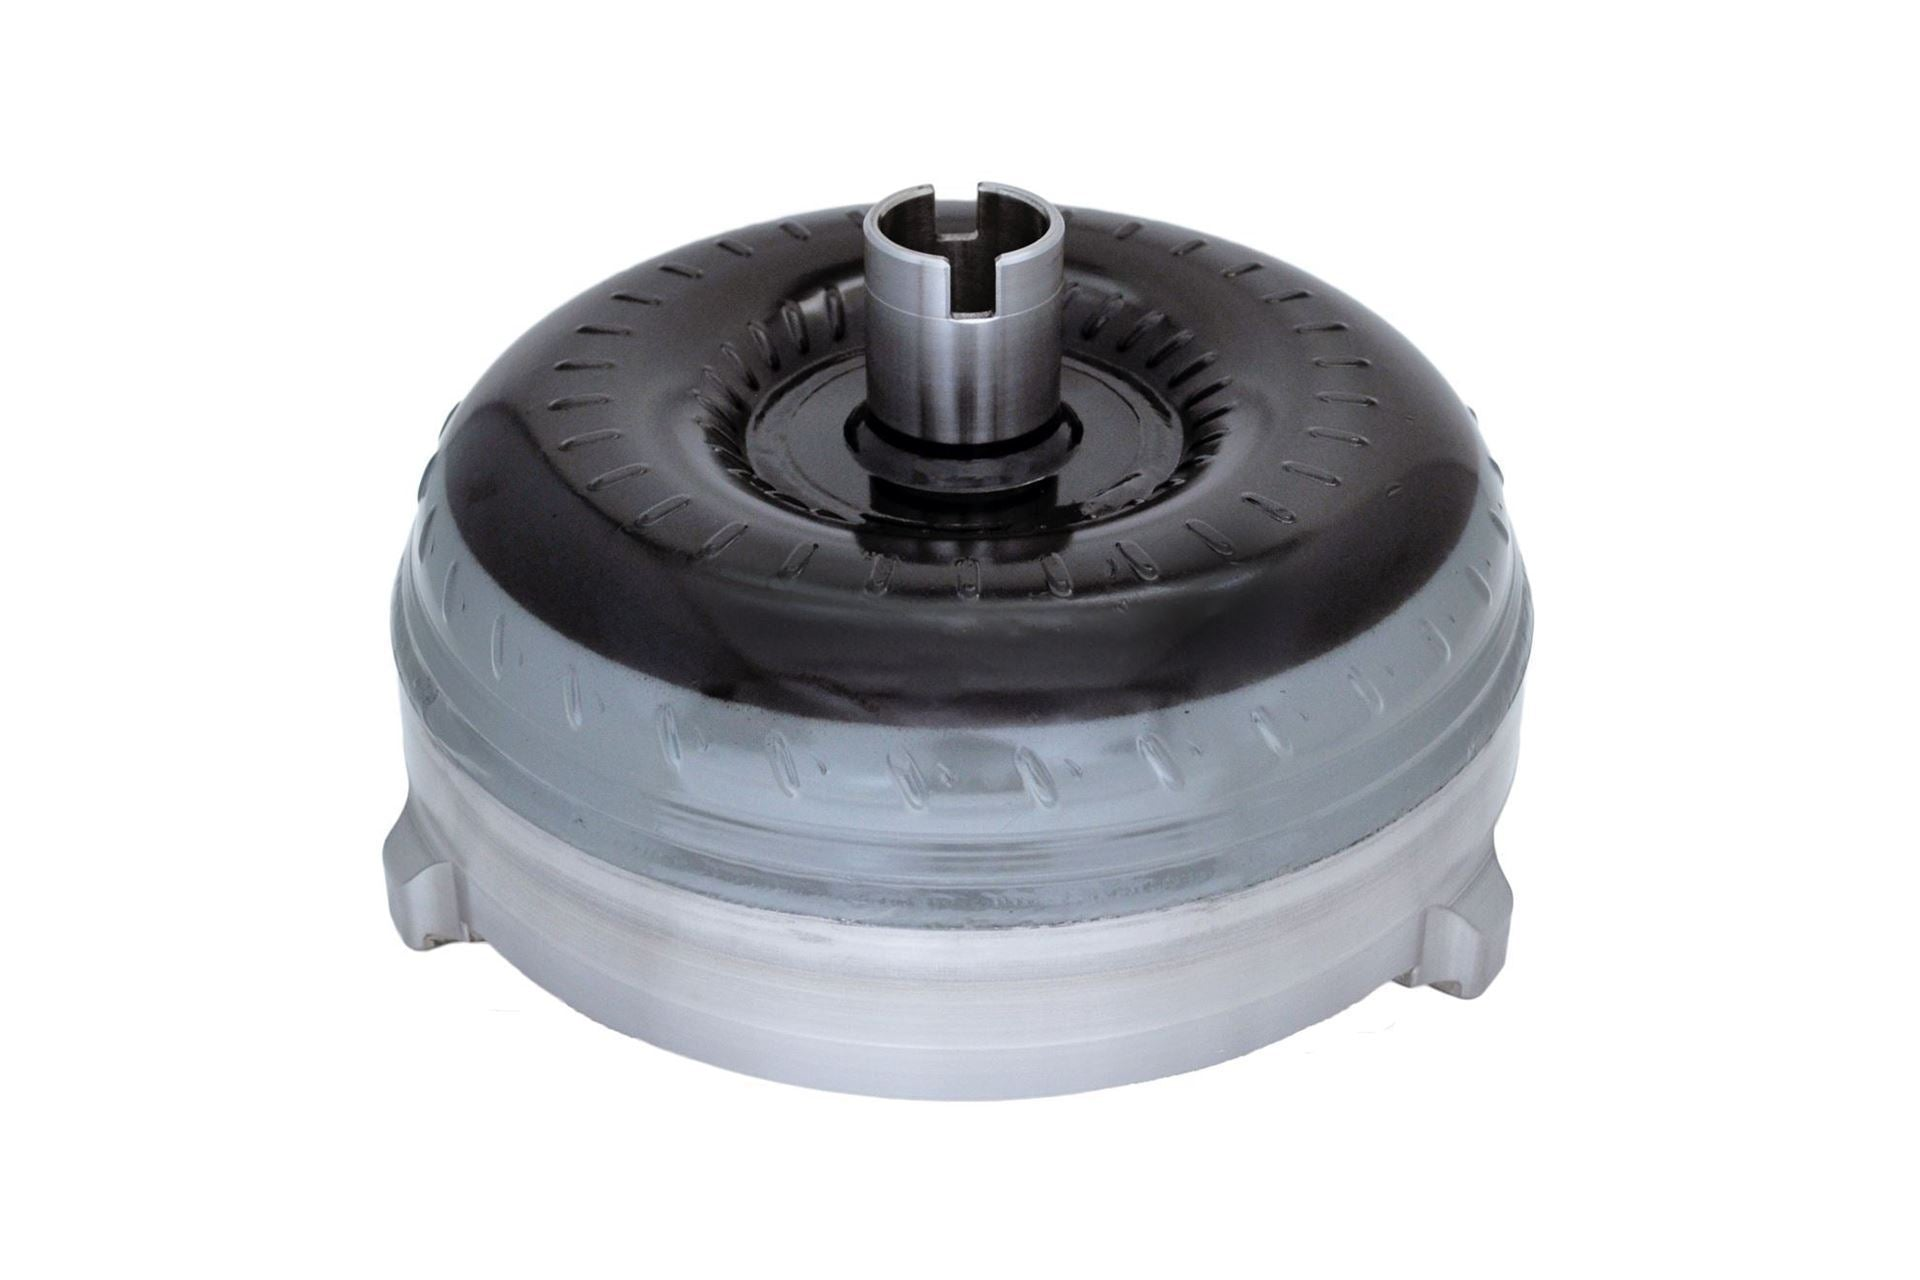 Circle D 258mm Billet Pro Series LS Torque Converter - 6L80e